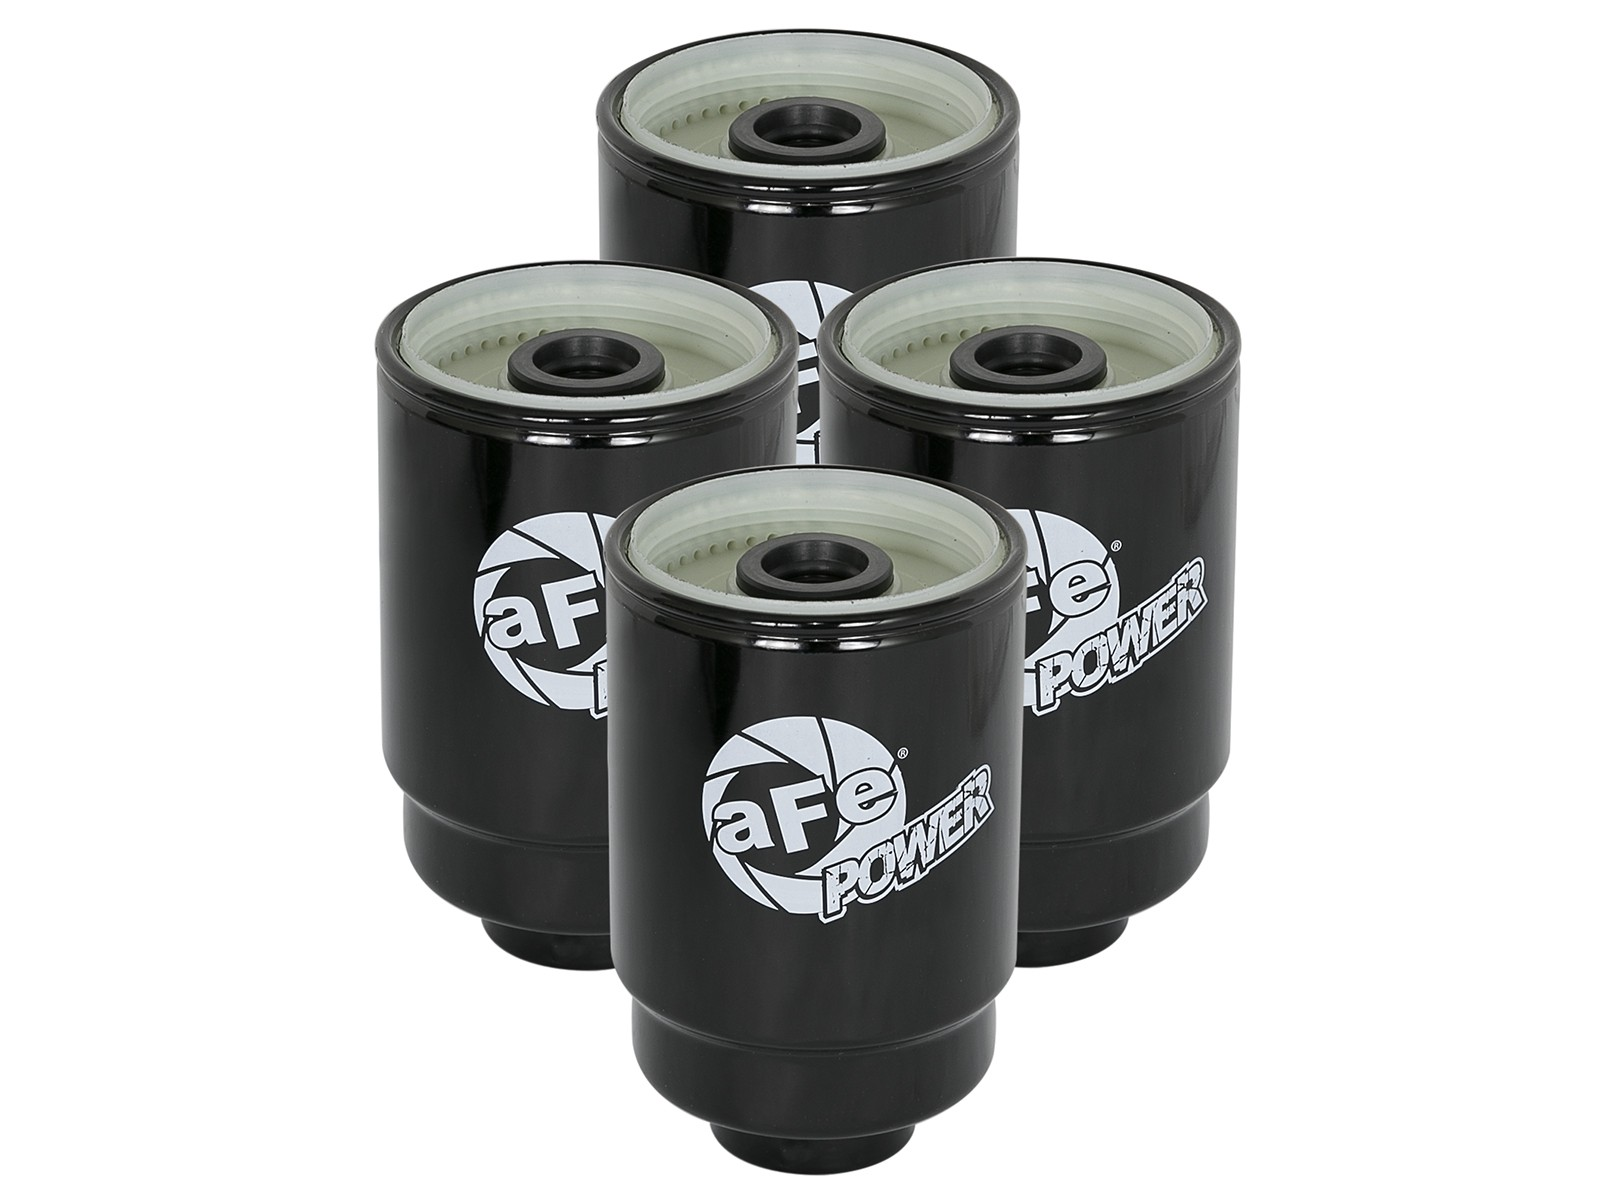 Afe Duramax Fuel Filter Freightliner Wrench Pro Guard Hd 4 Pack Power Rh Afepower Com 2002 Change